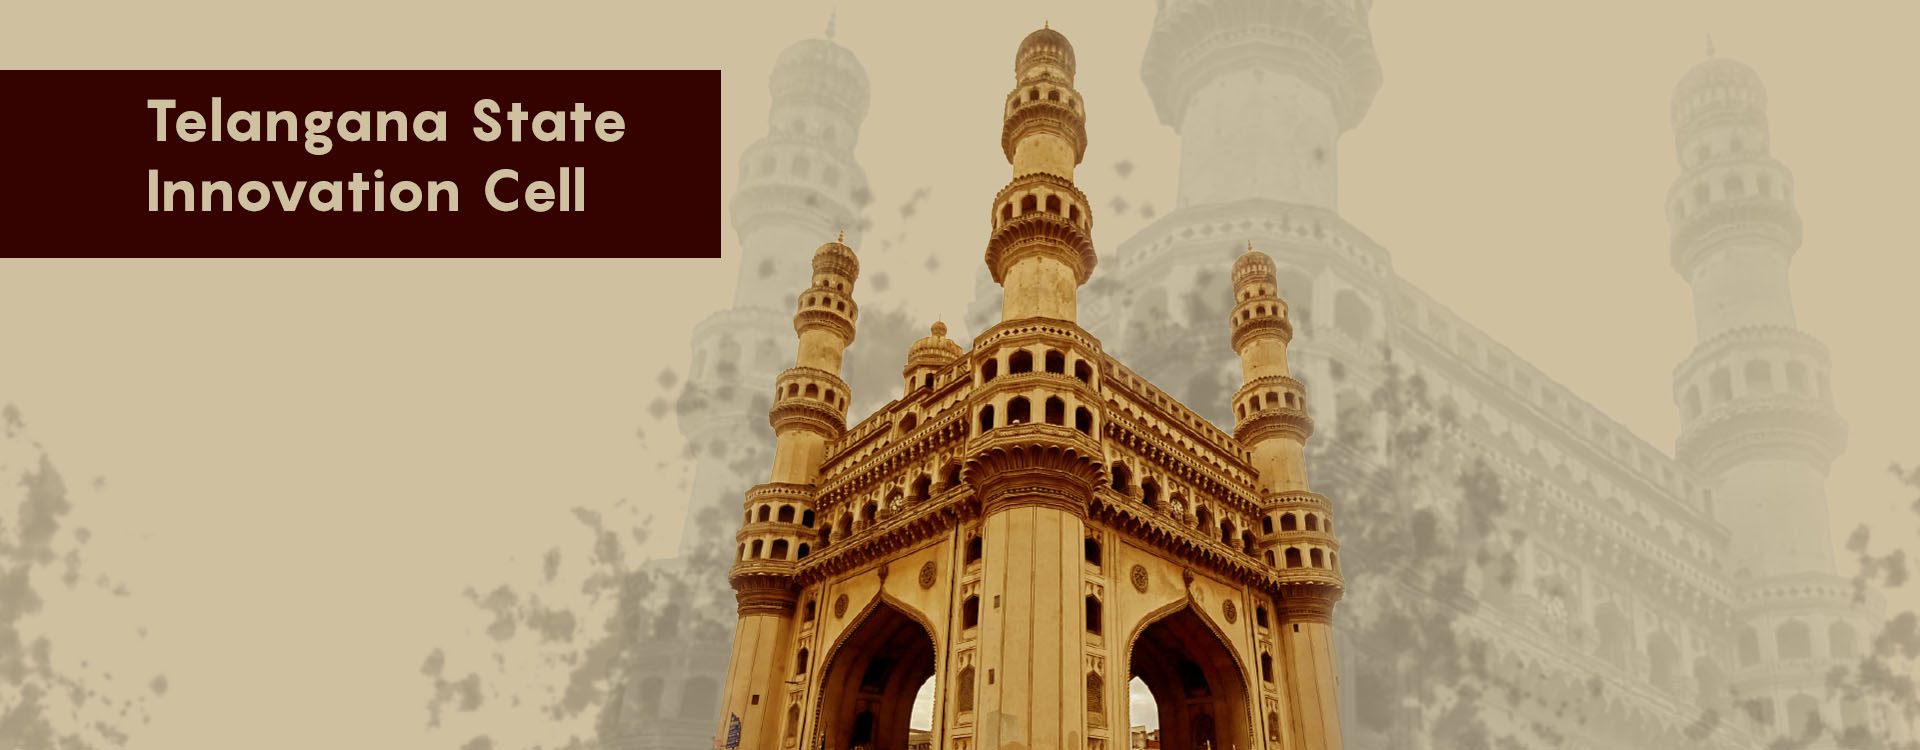 Telangana State Innovation Cell is helping Start-ups and Incubators